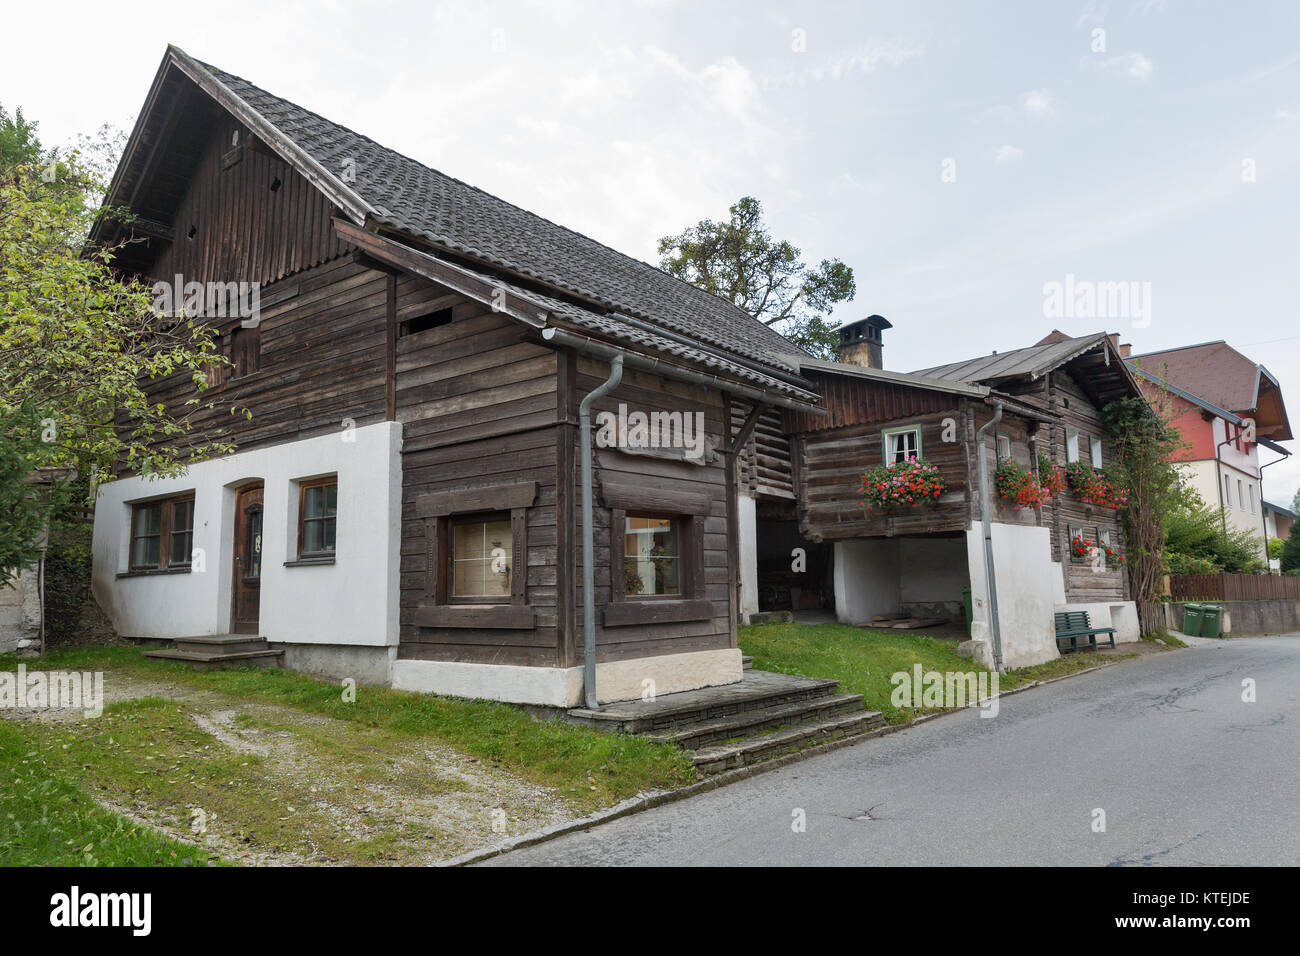 Haus 24 De Haus Austria September 24 2017 Old Rural Wooden Architecture